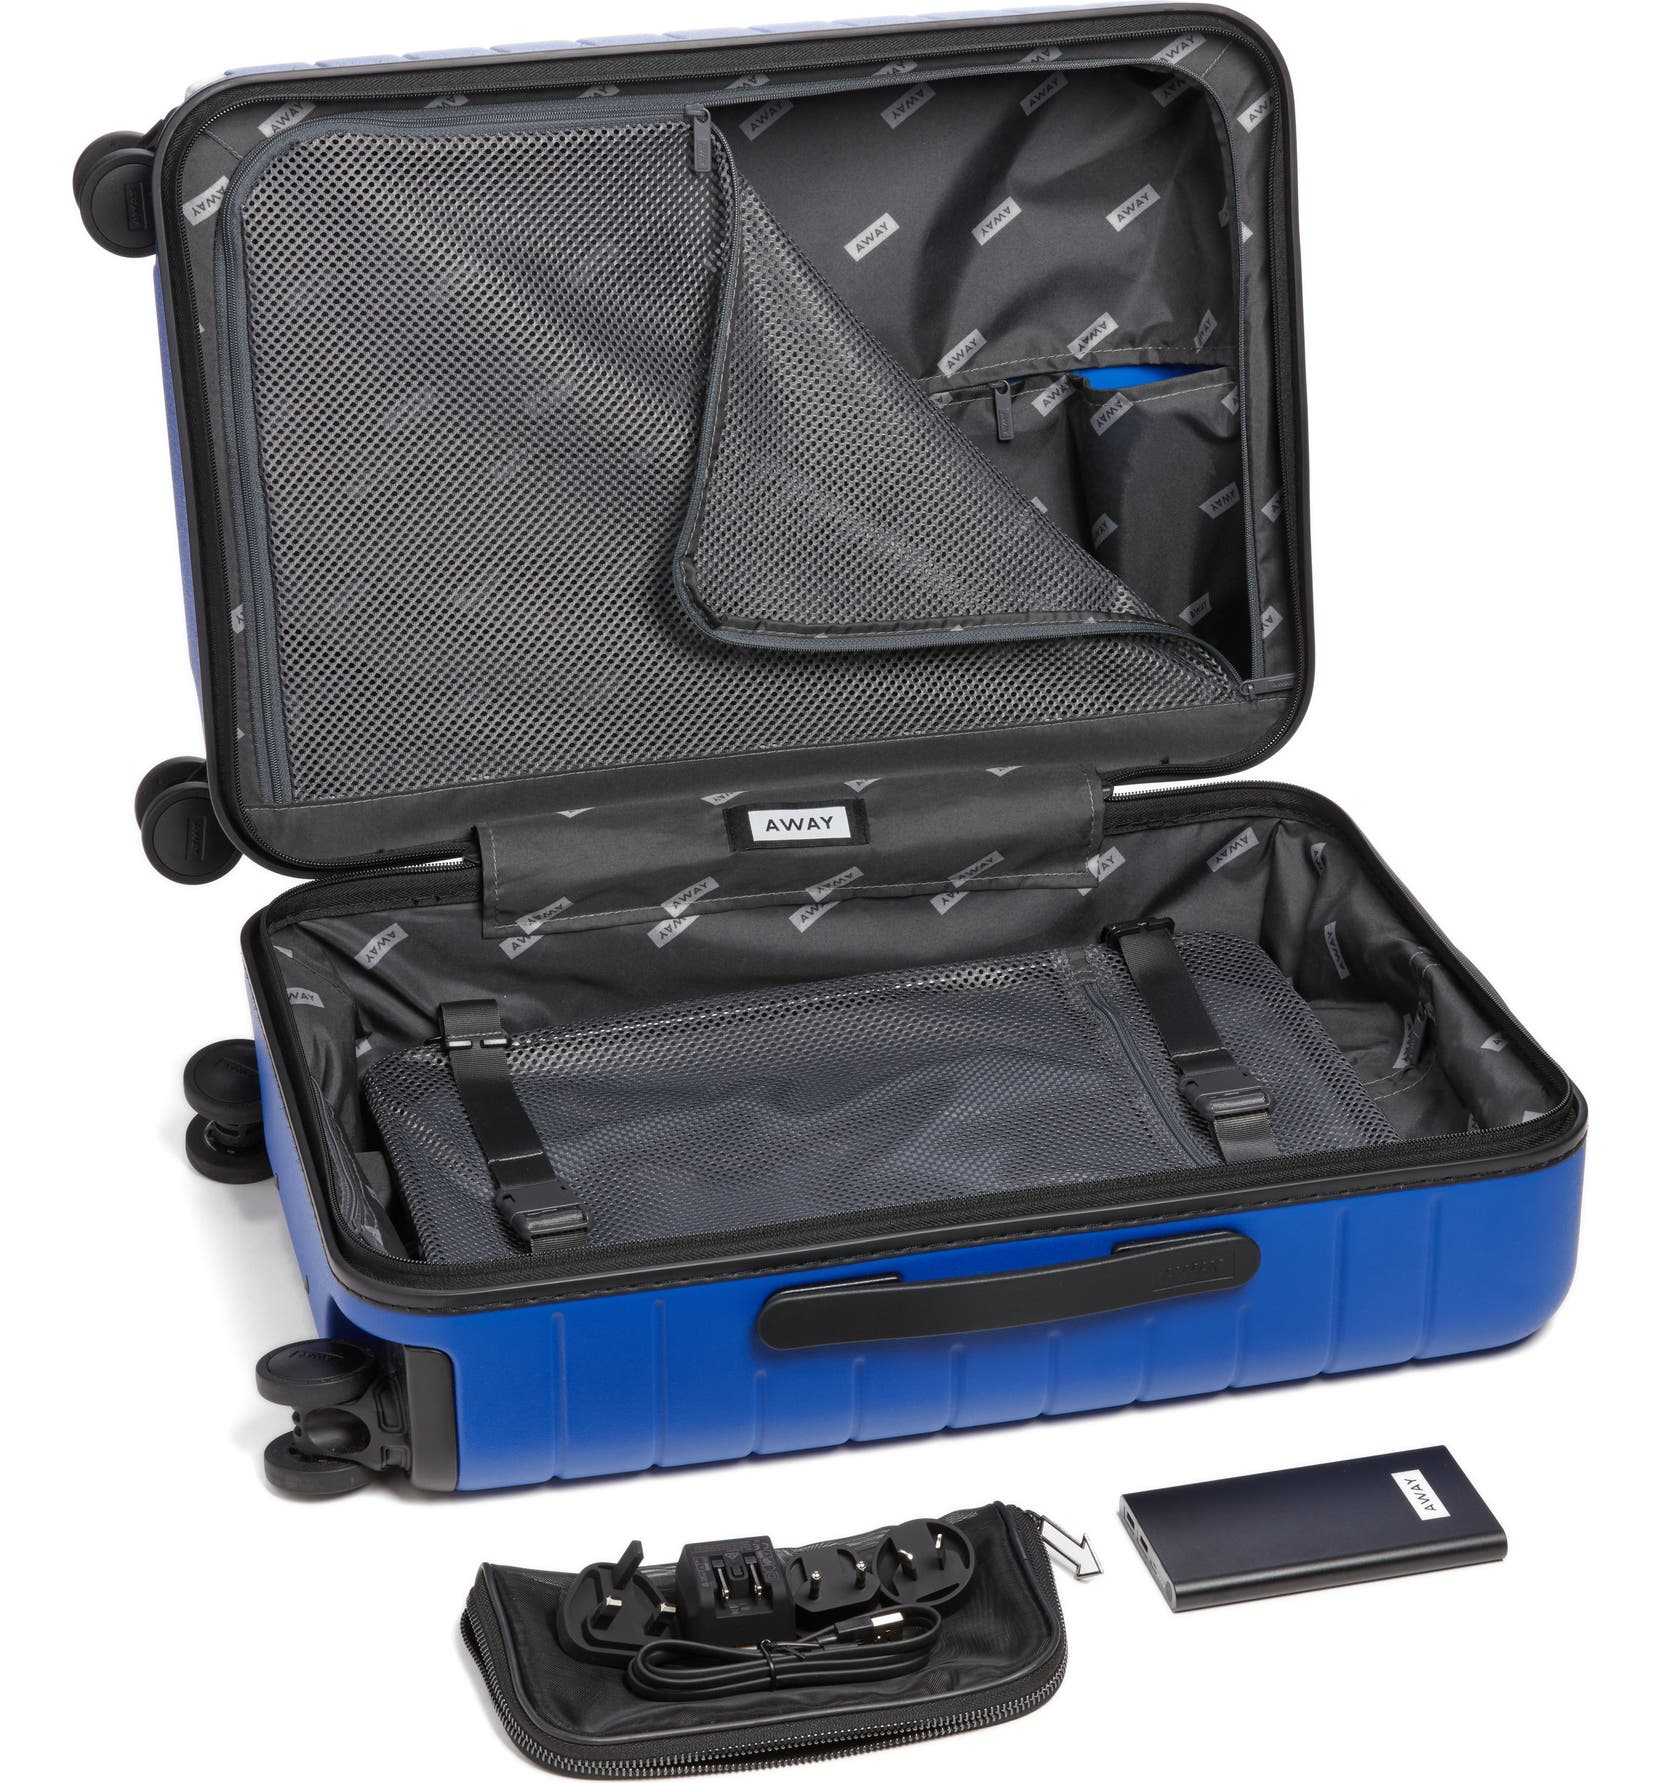 35ecc60a1a Away The Bigger Carry-On Hard Shell Suitcase (Nordstrom Exclusive) |  Nordstrom